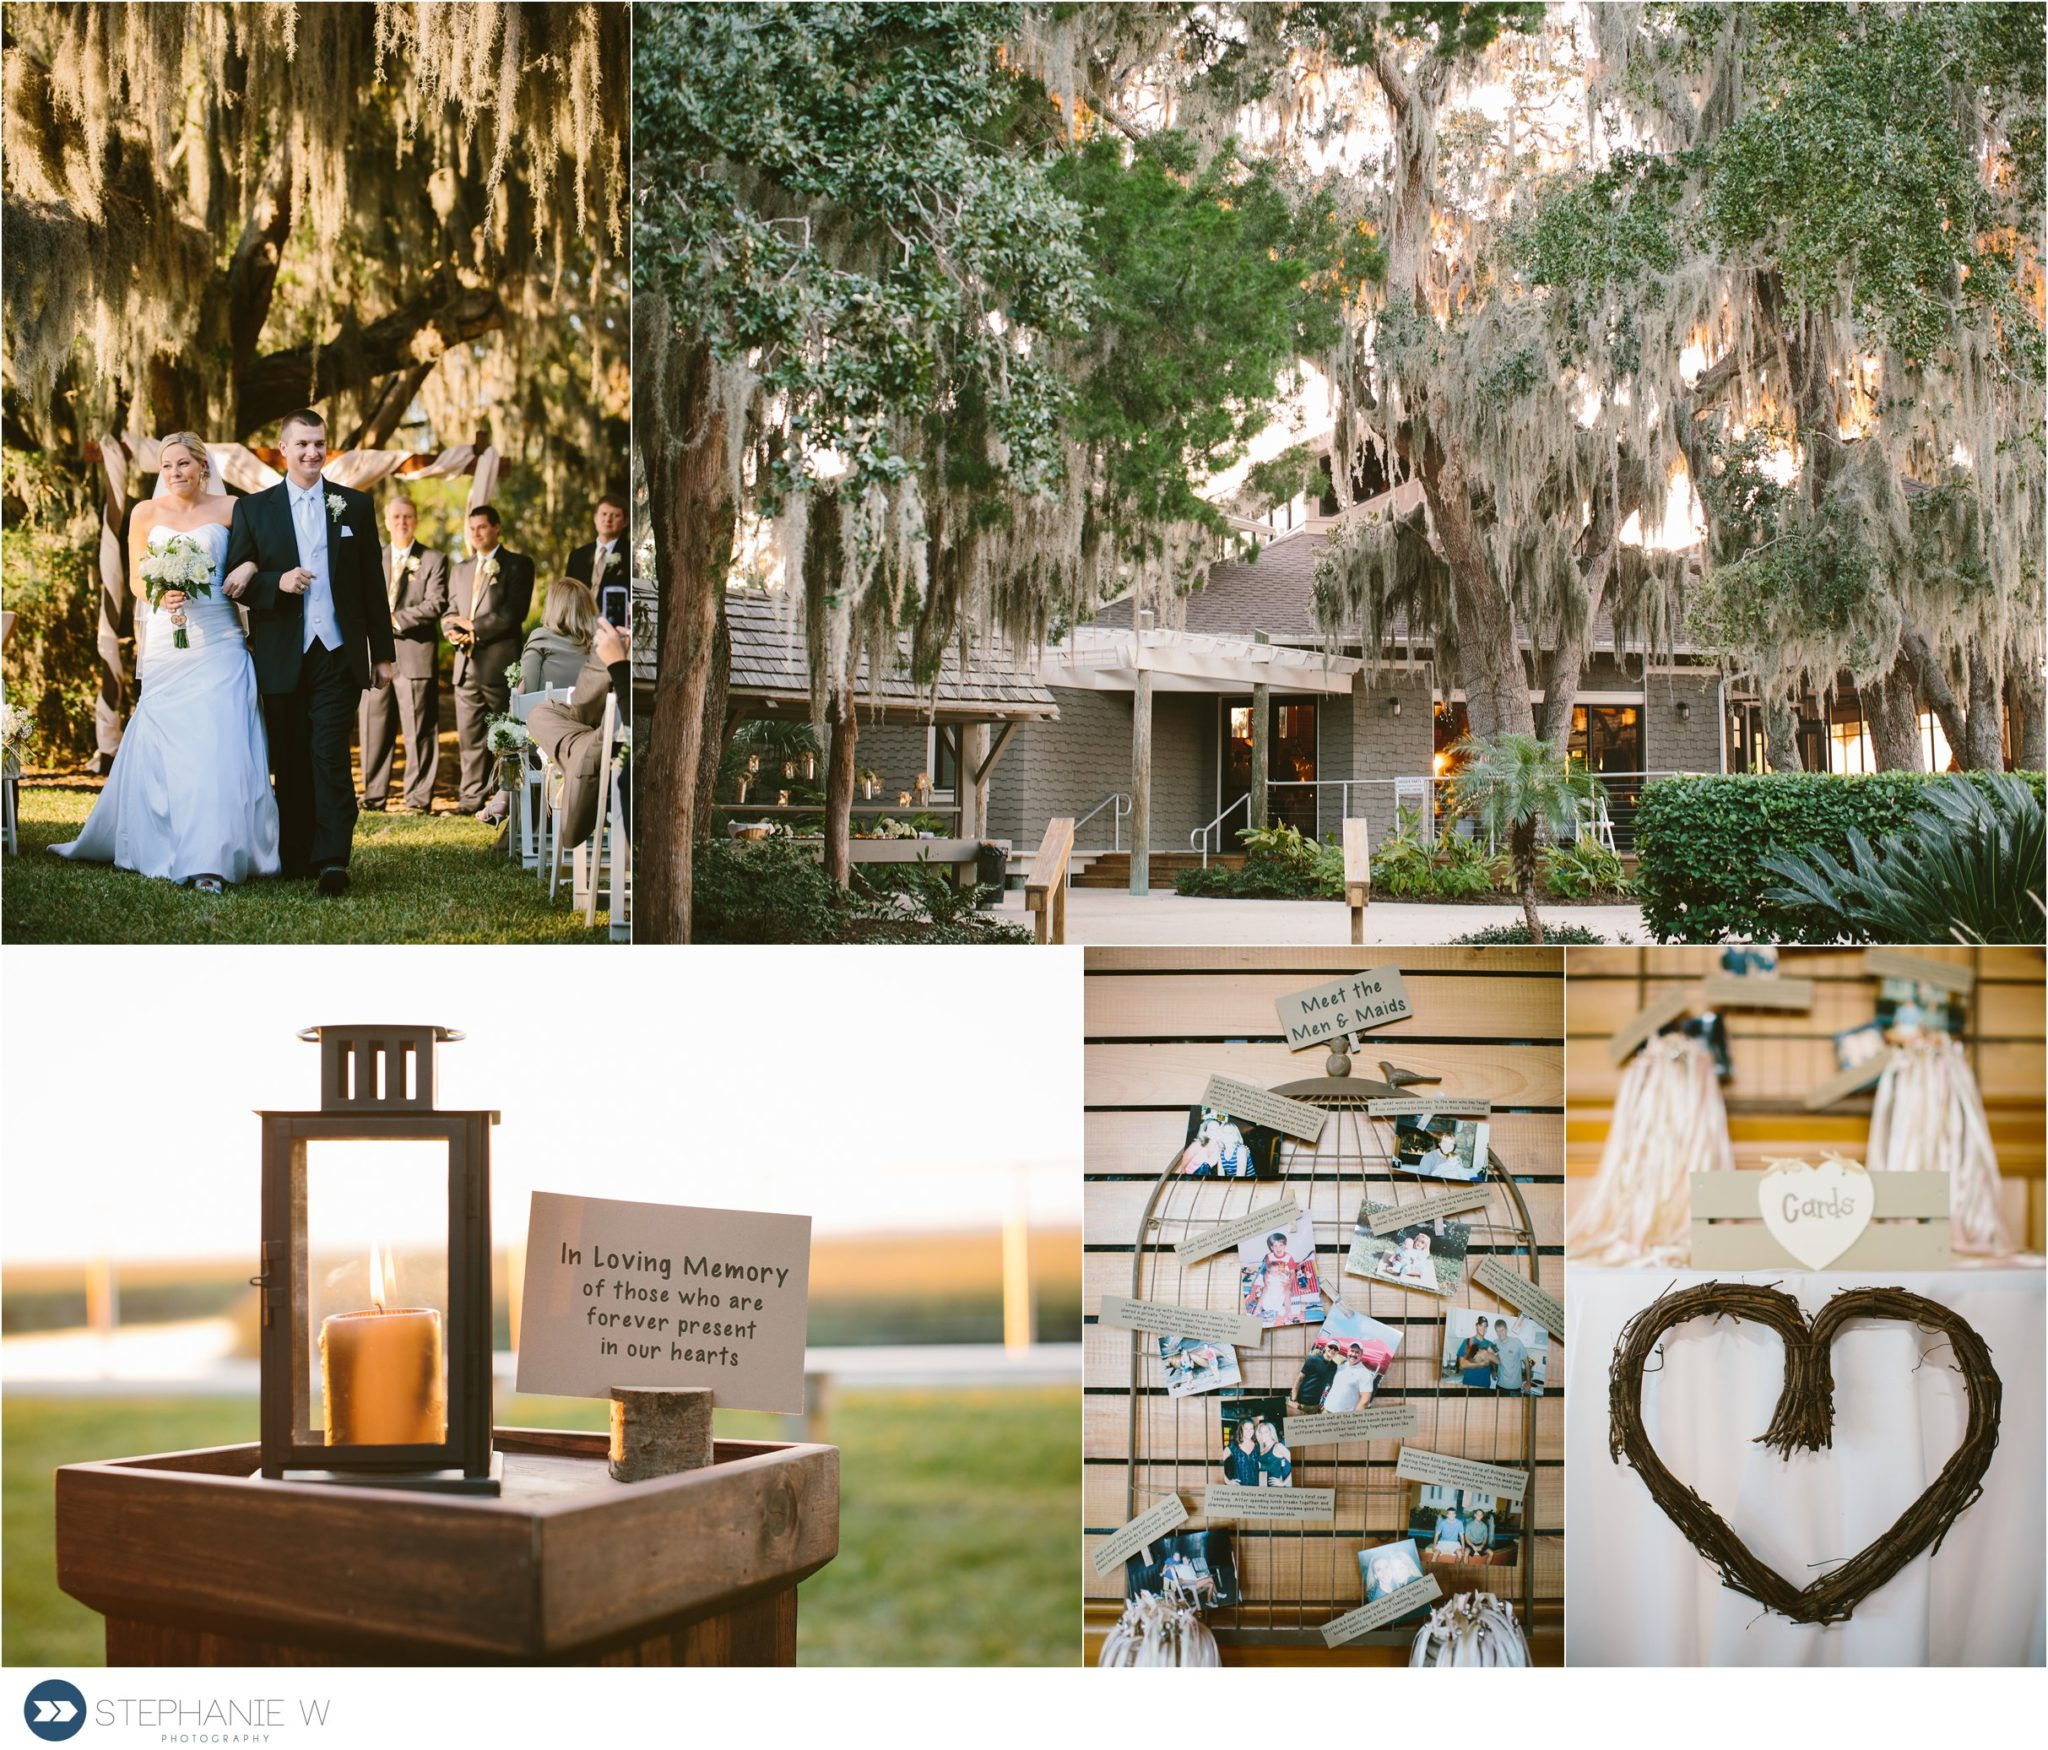 ceremony and details of wedding at walker's landing